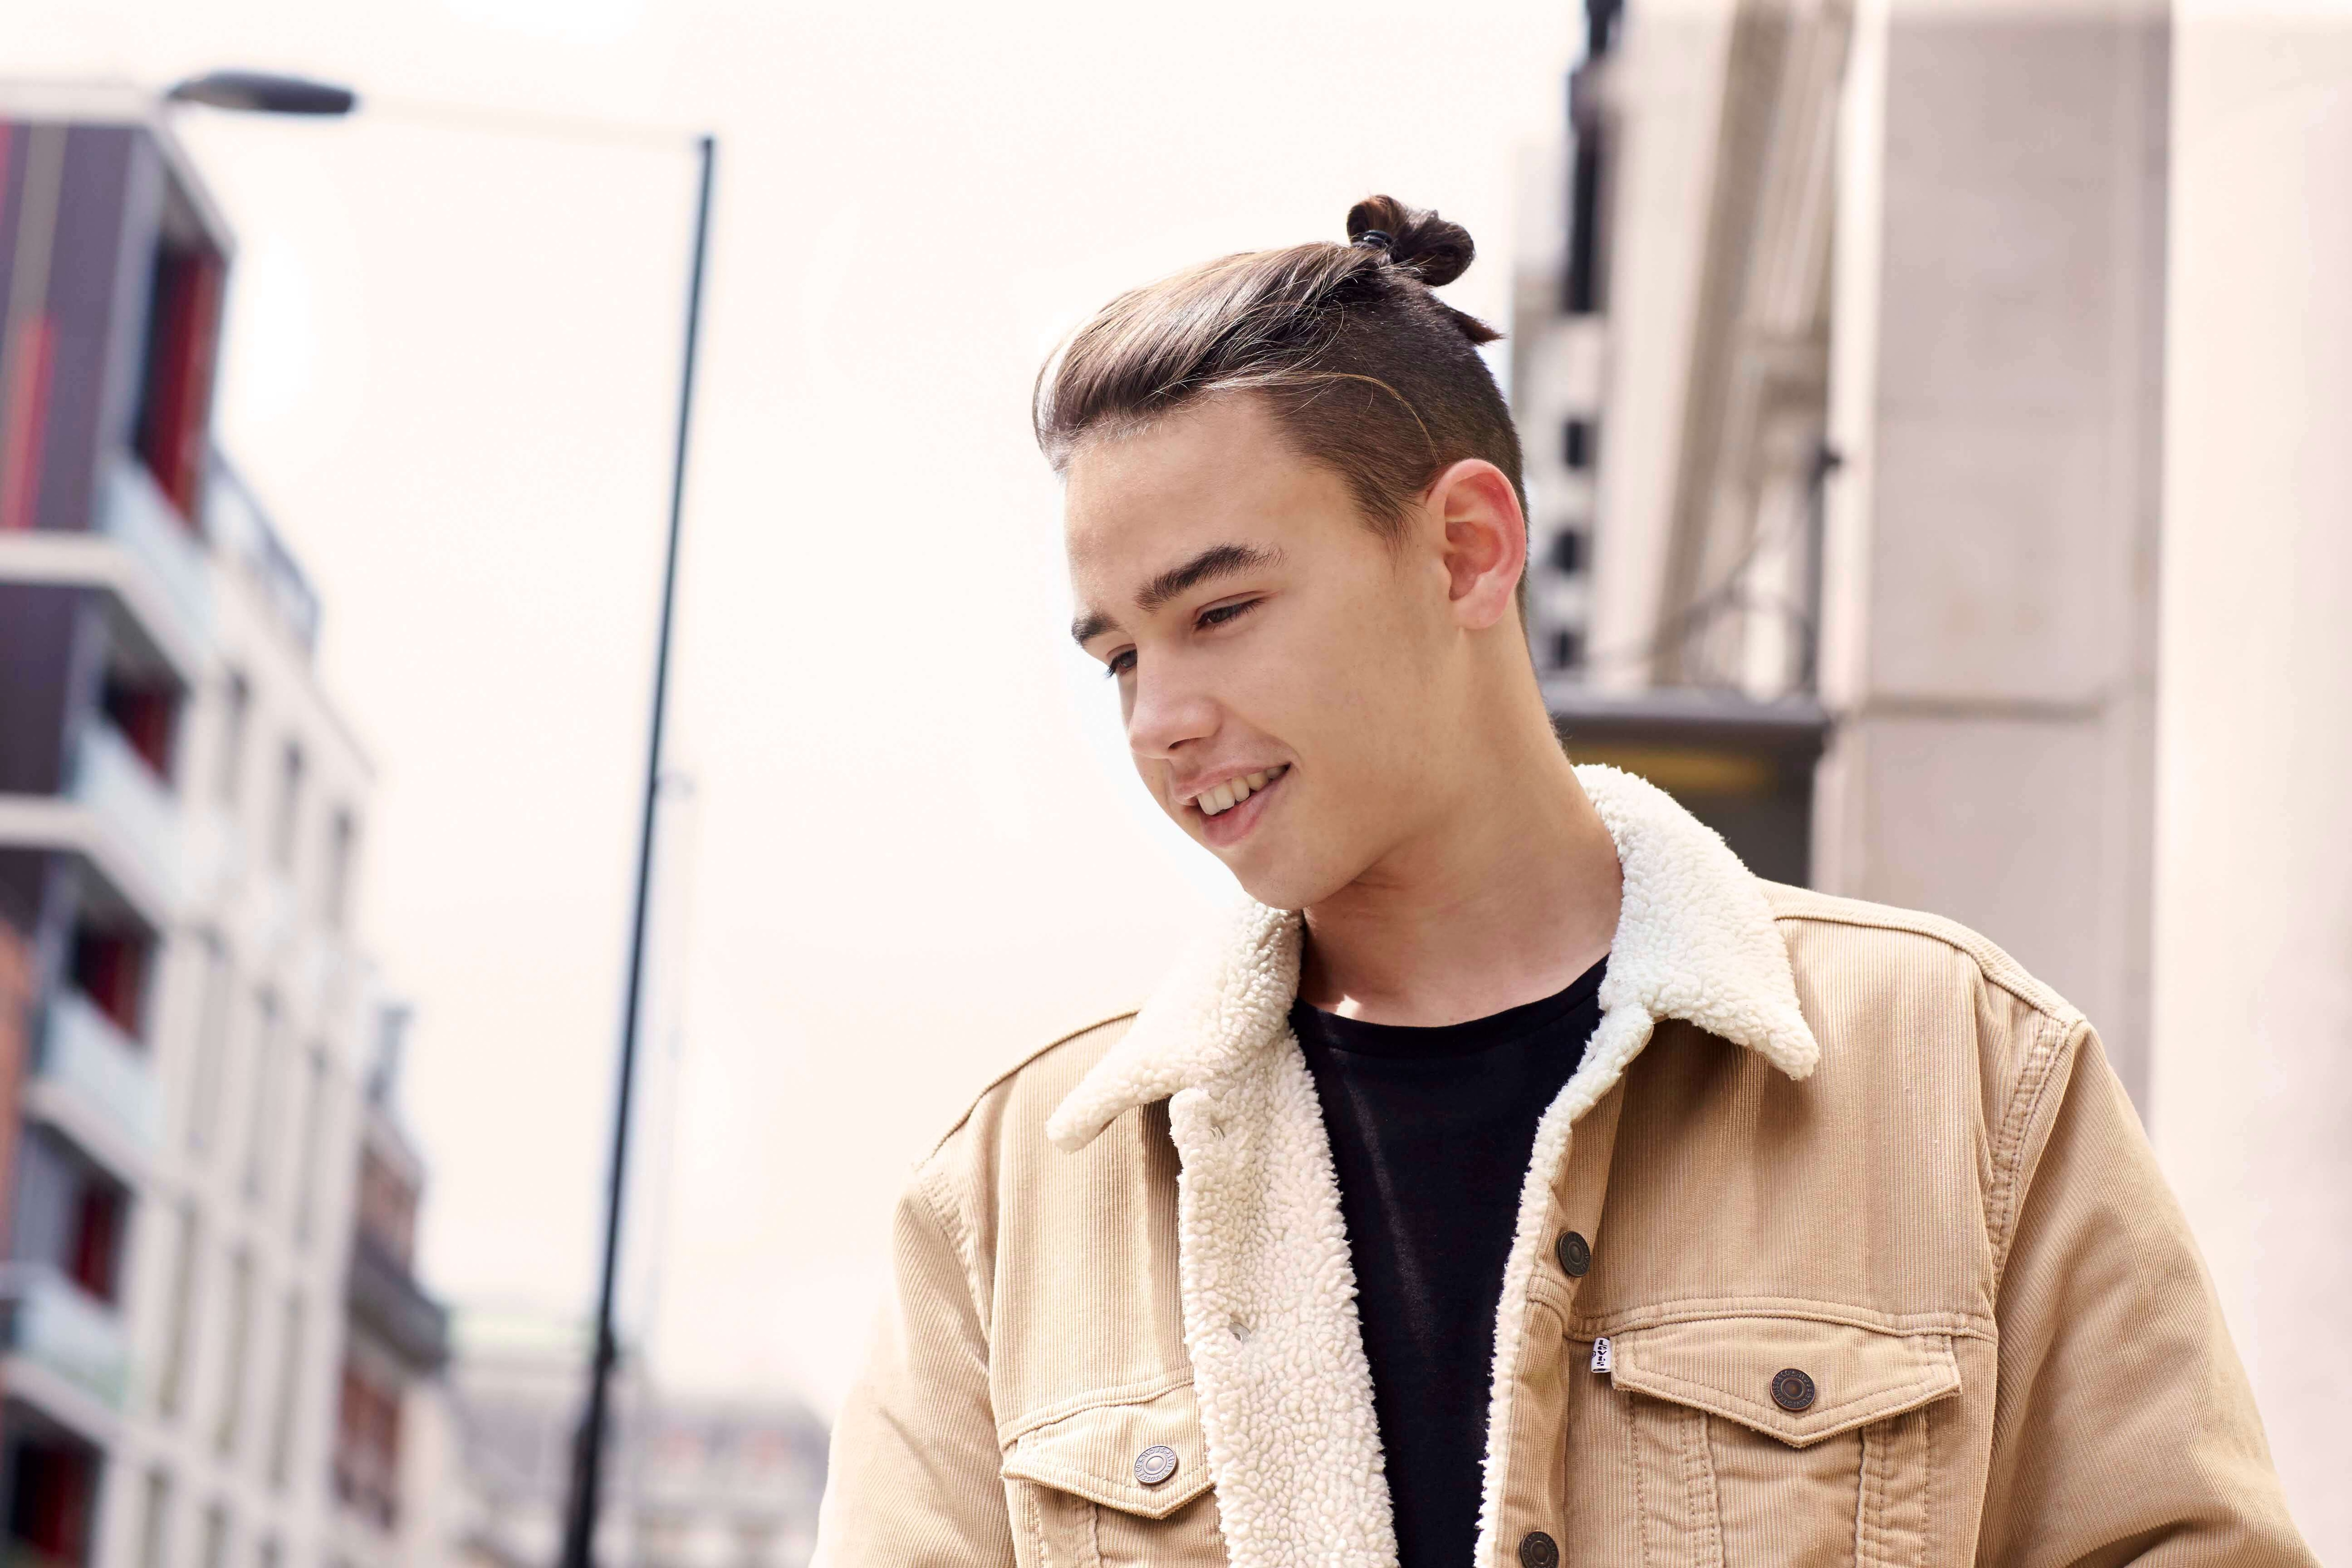 Man Bun Styles 7 Types Of Man Buns You Ll Want To Consider